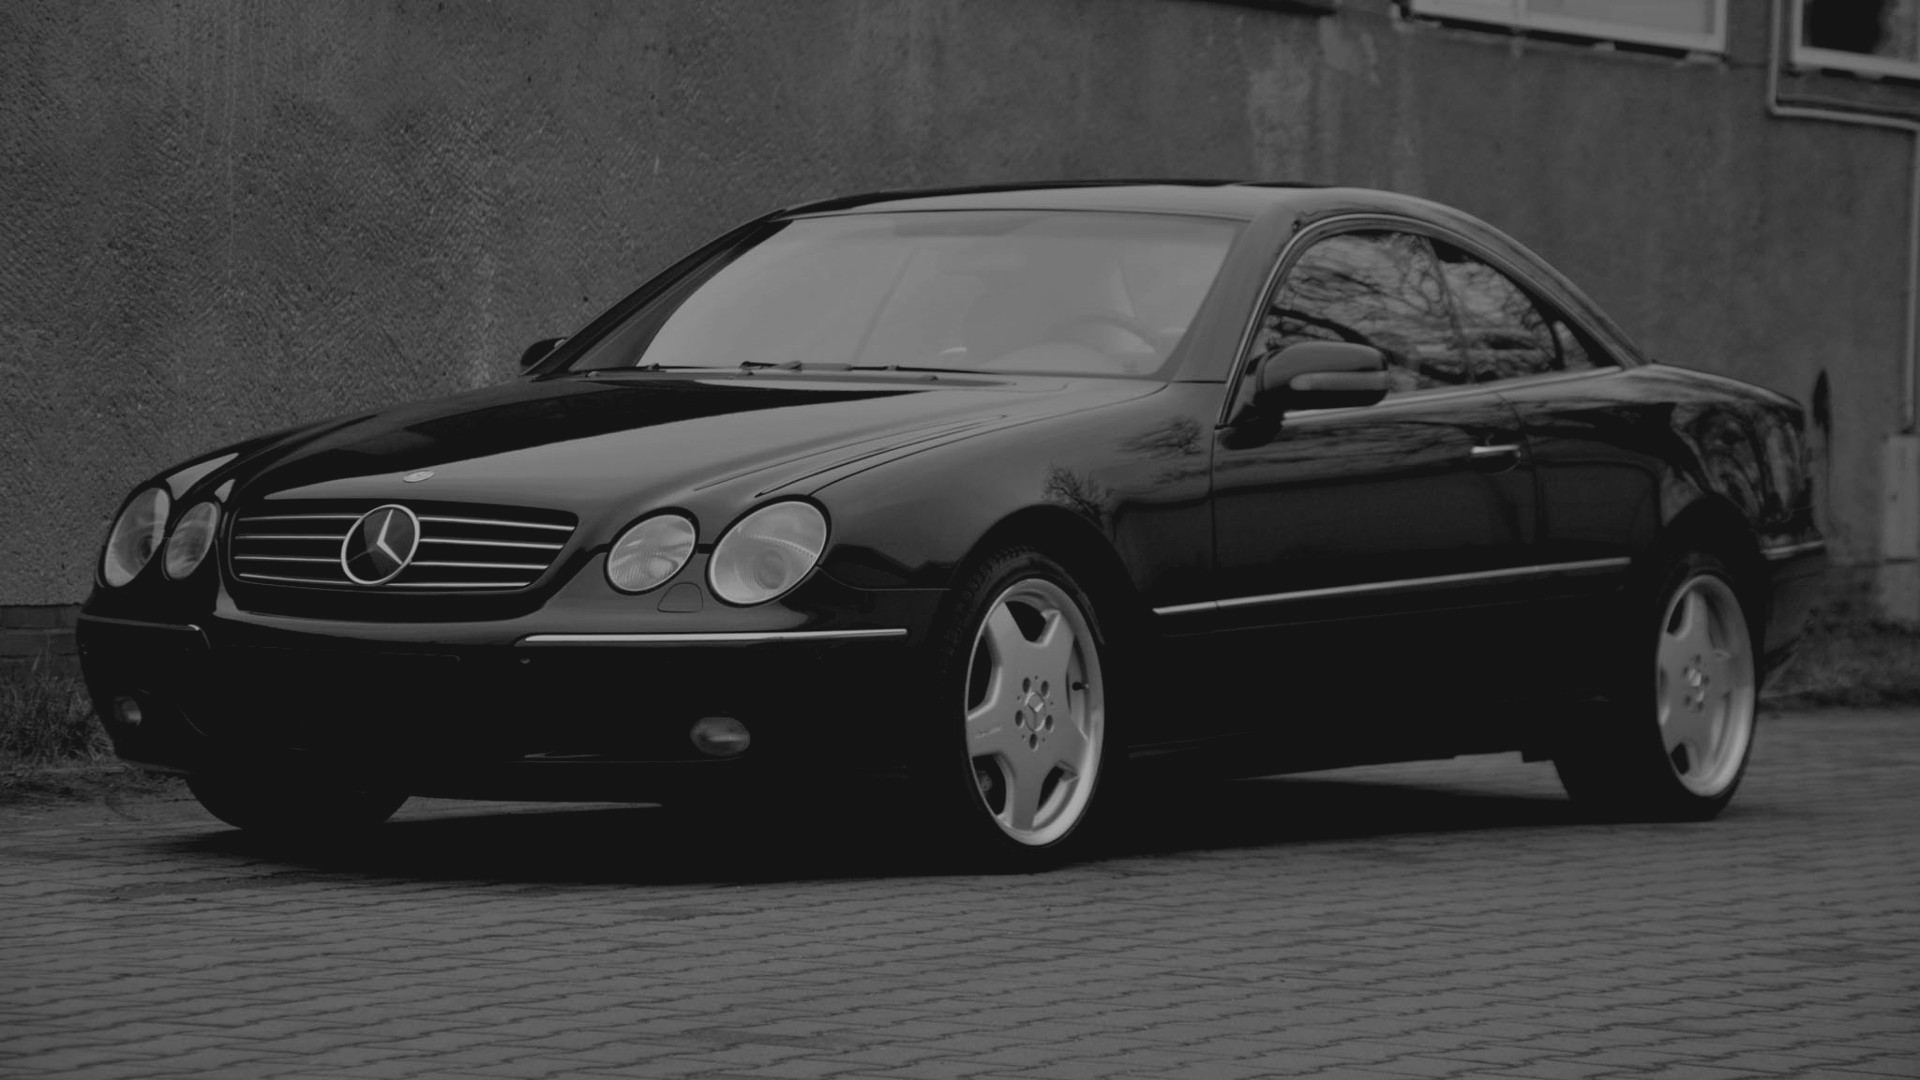 Classic Mercedes Benz CL500 C215 Customer Car